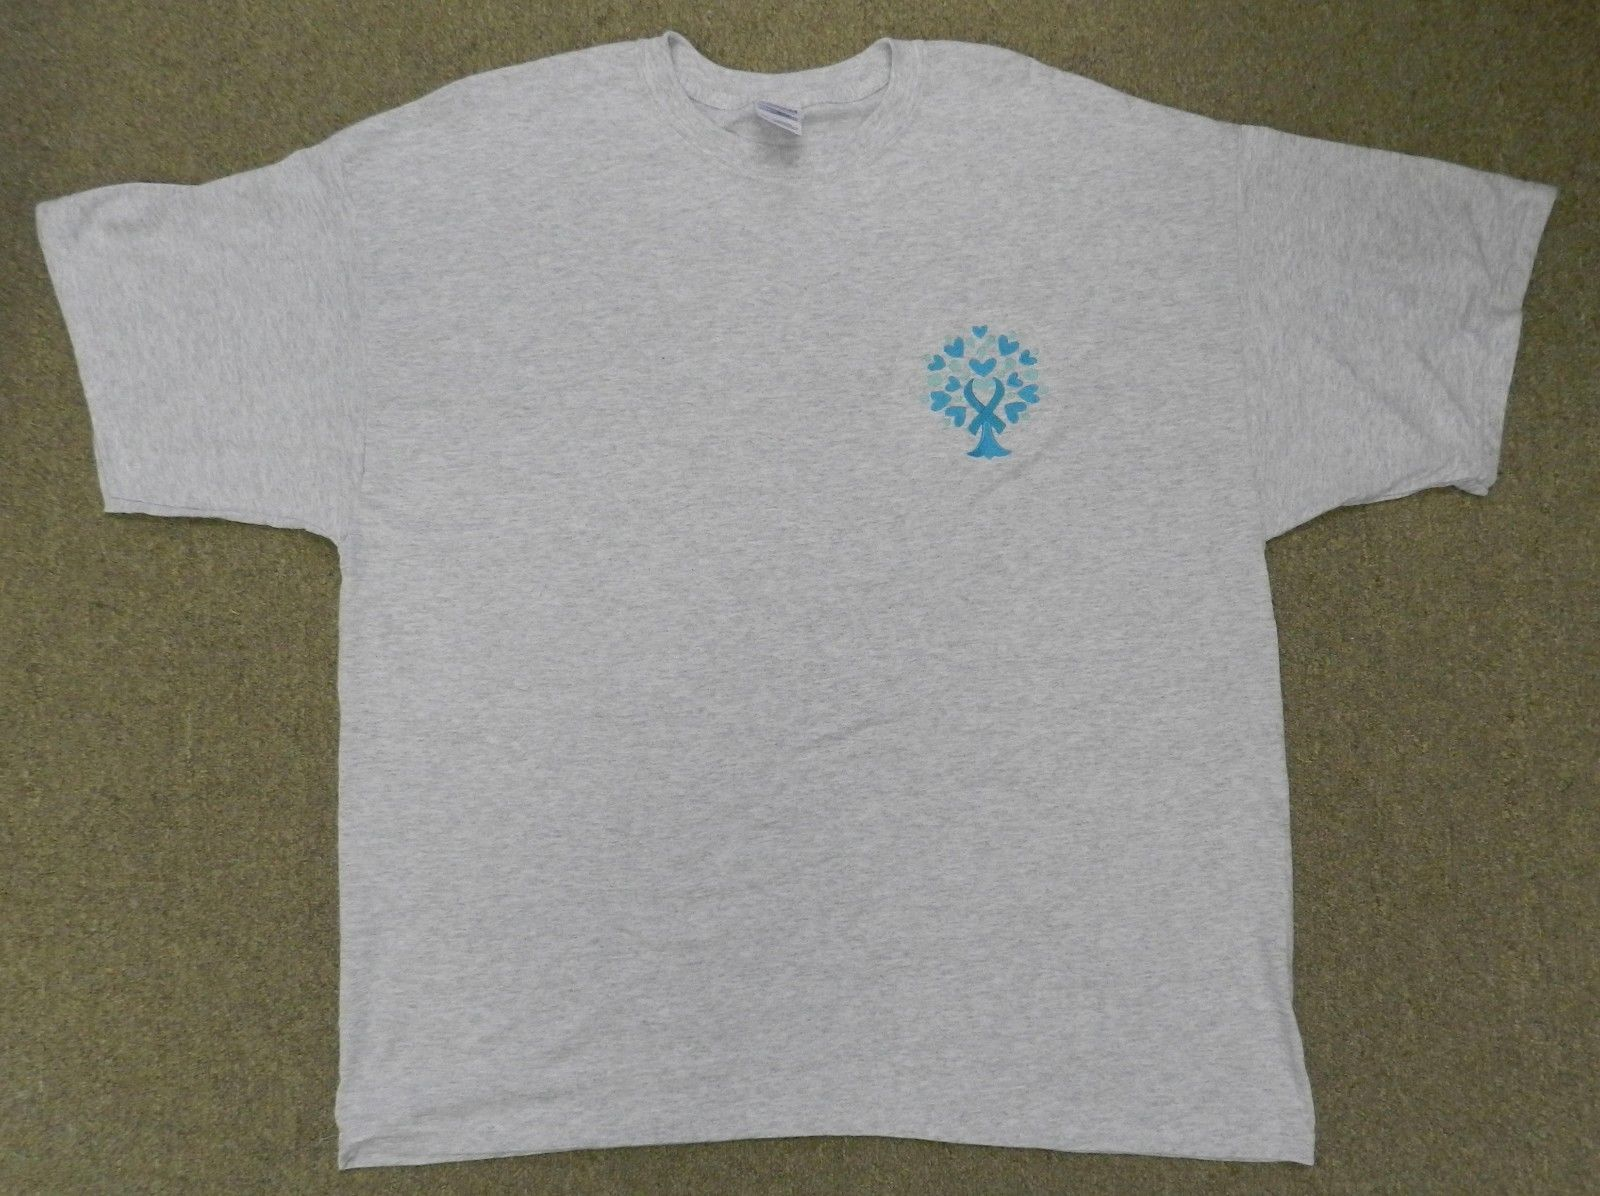 Ovarian Cancer Awareness 2XL Teal Ribbon Tree of Life Heart Gray S/S T Shirt New